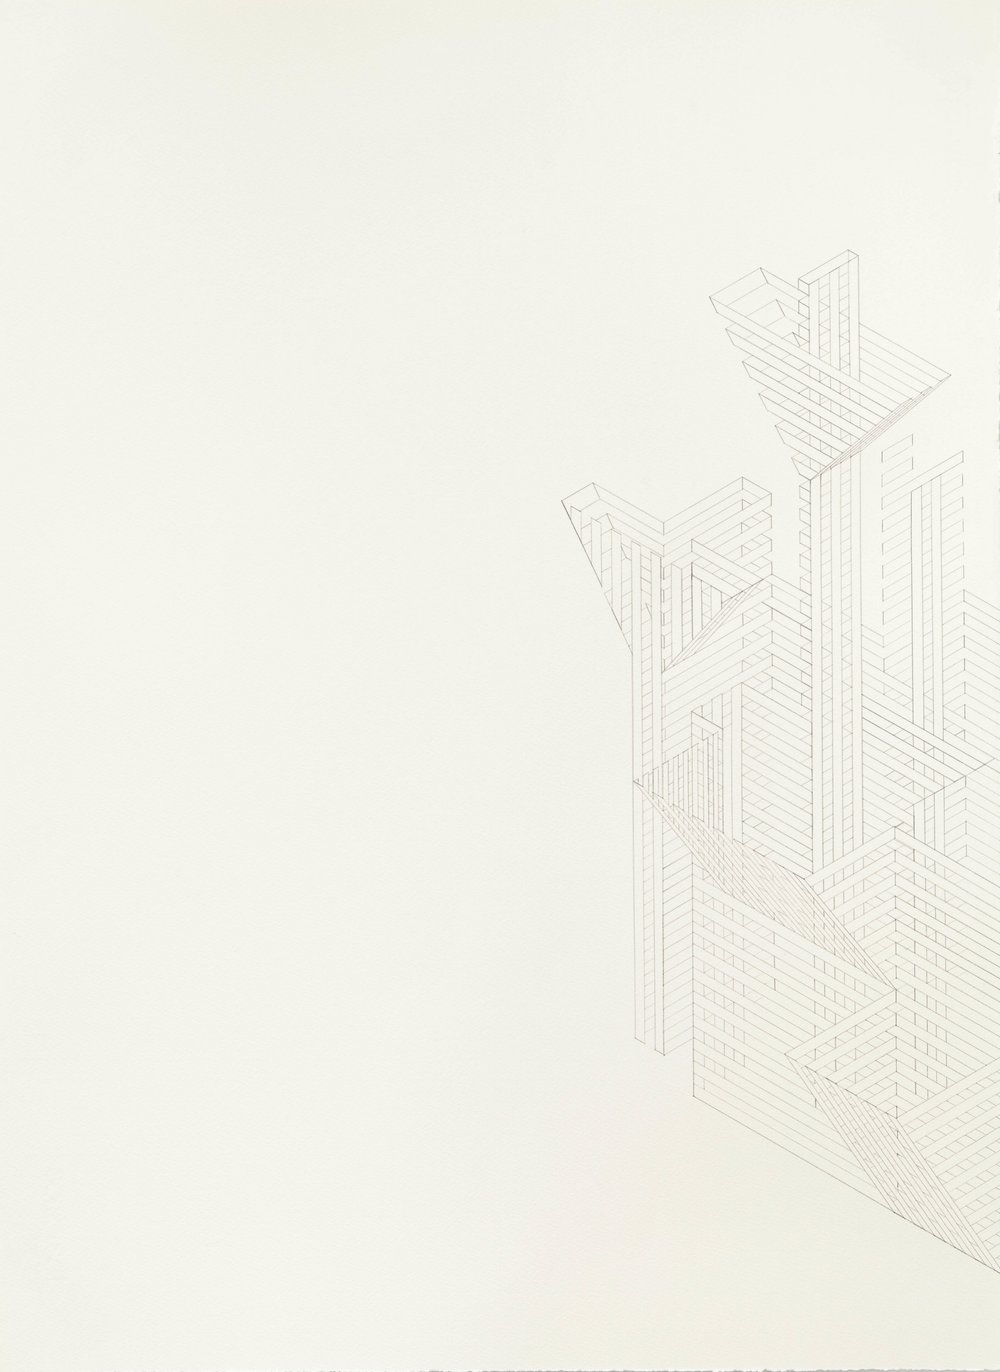 Construction 28, 2012  graphite on printmaking paper  30 x 22 inches